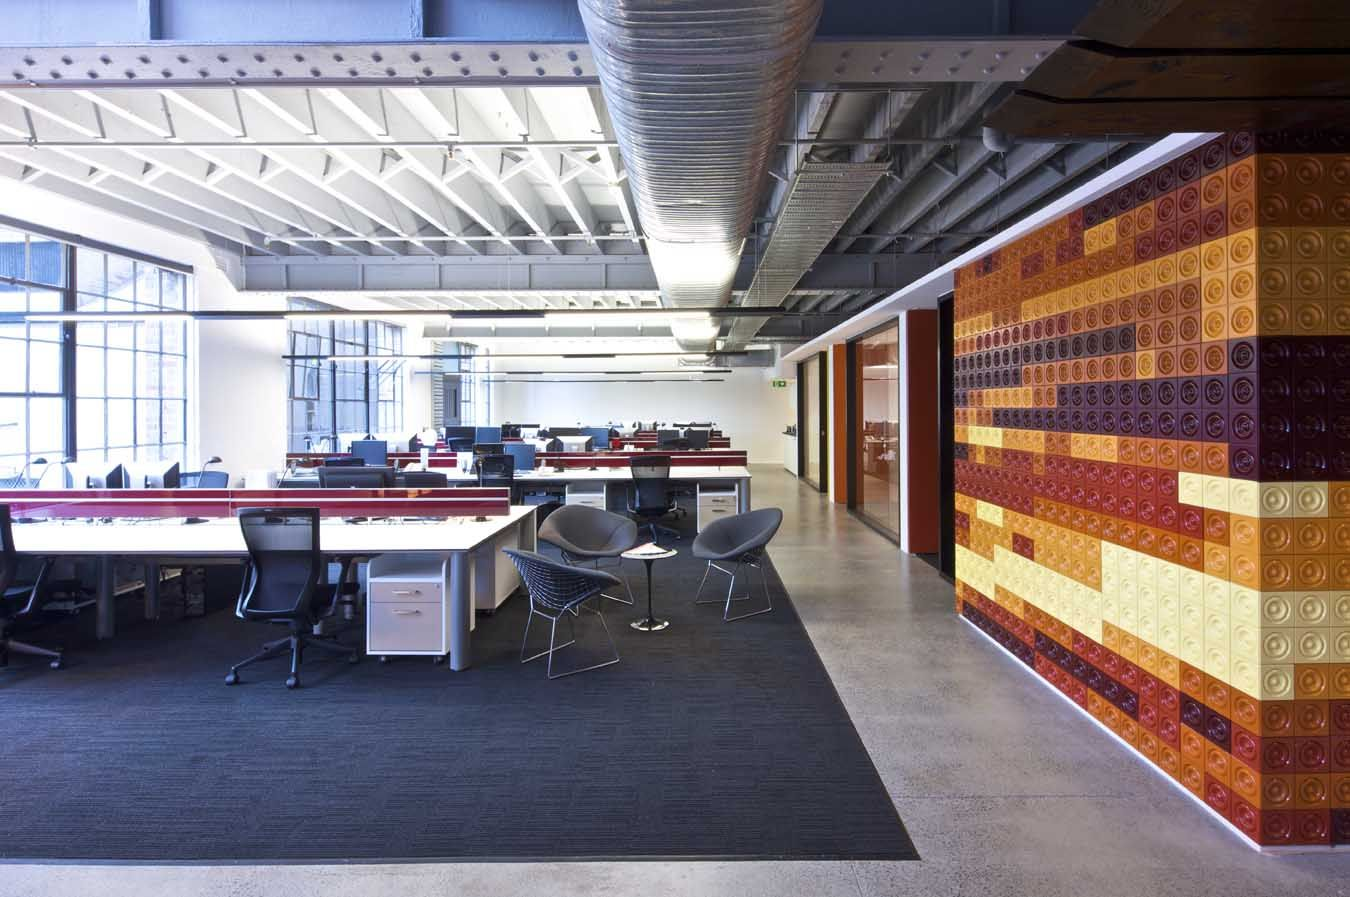 interior design ideas for office space - 1000+ images about Open Office Space Inspiration on Pinterest ...